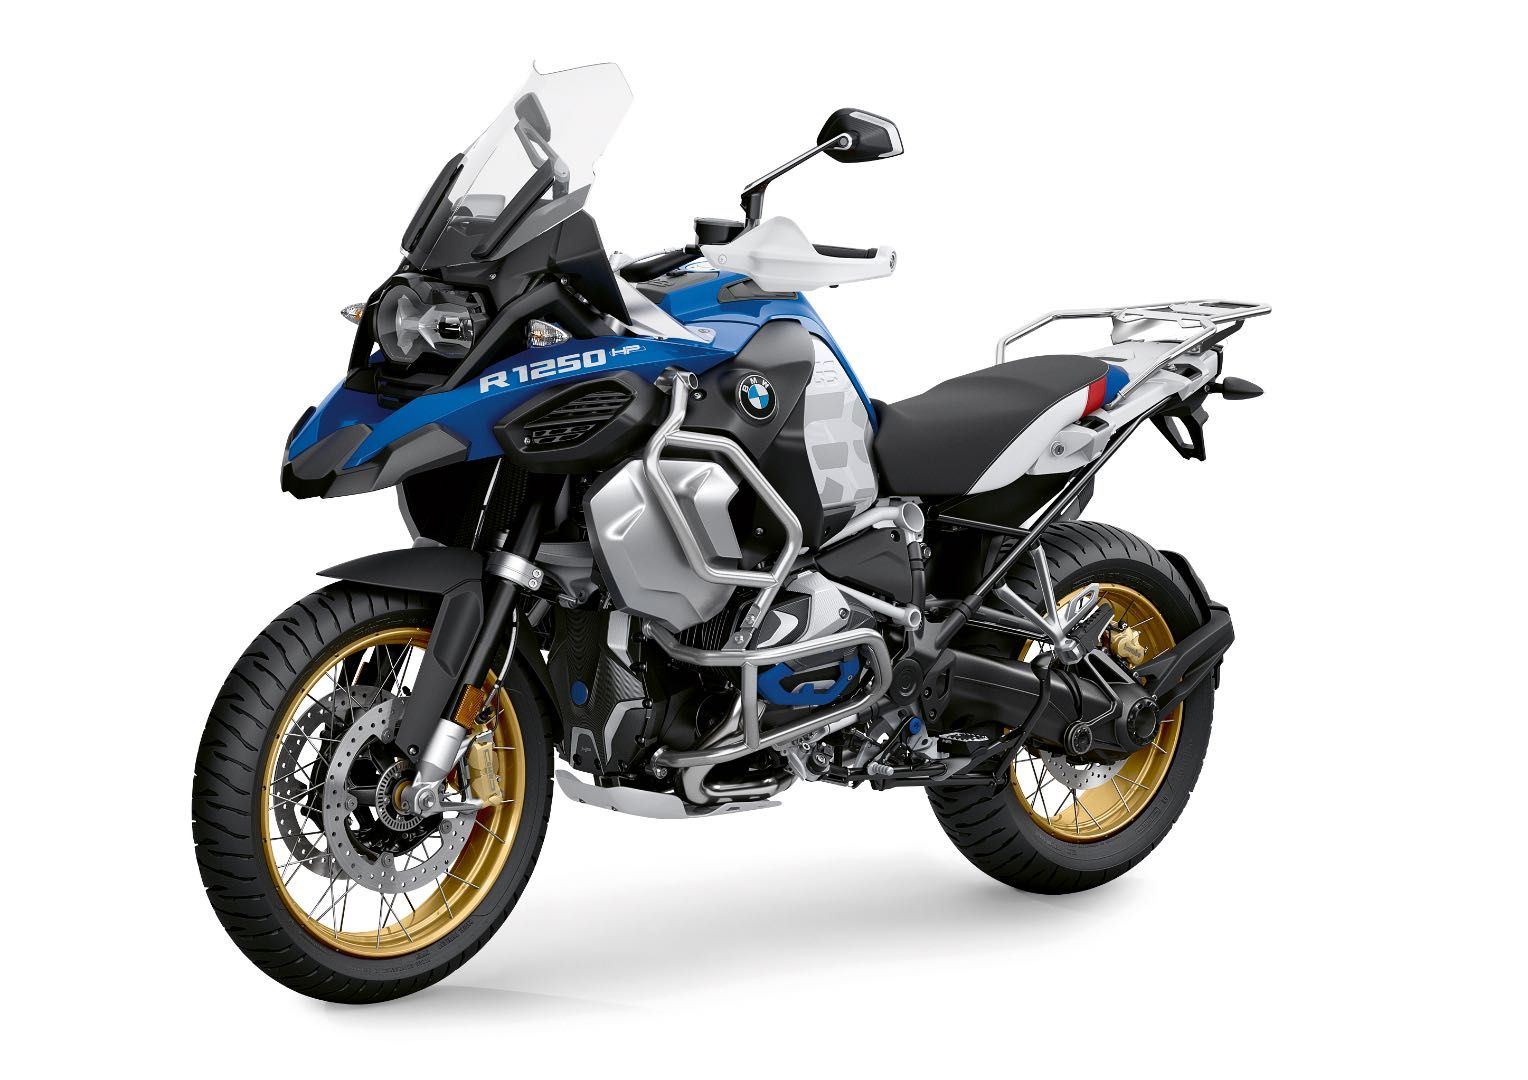 2019 Bmw R 1250 Gs Adventure White And Blue Toys Bmw Motorbikes